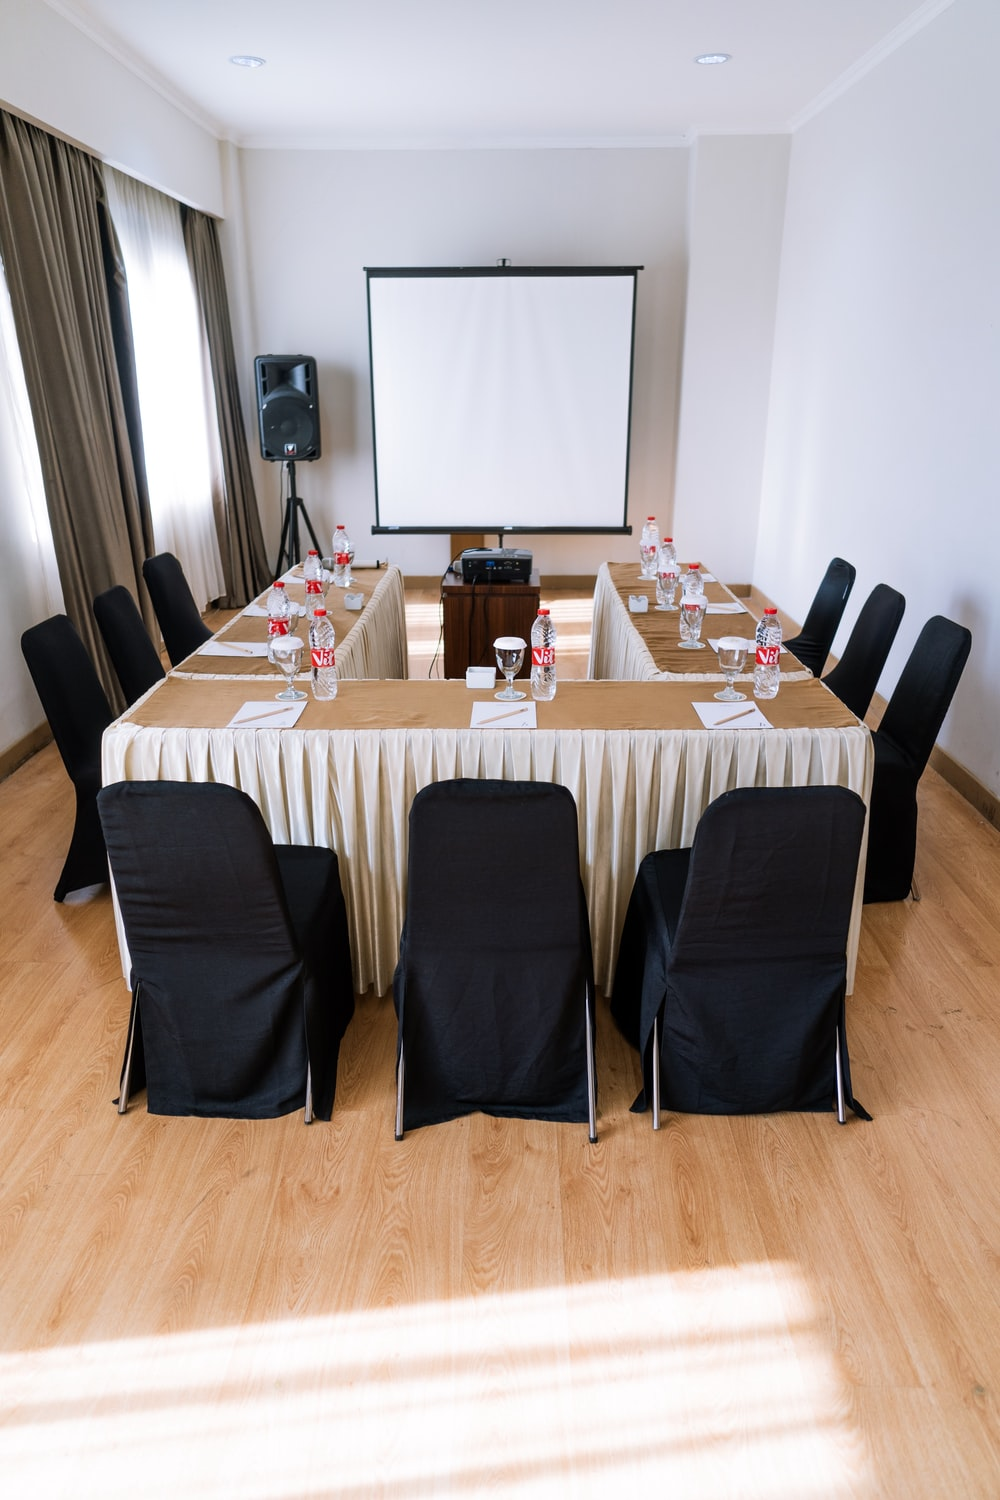 black chairs and table in room